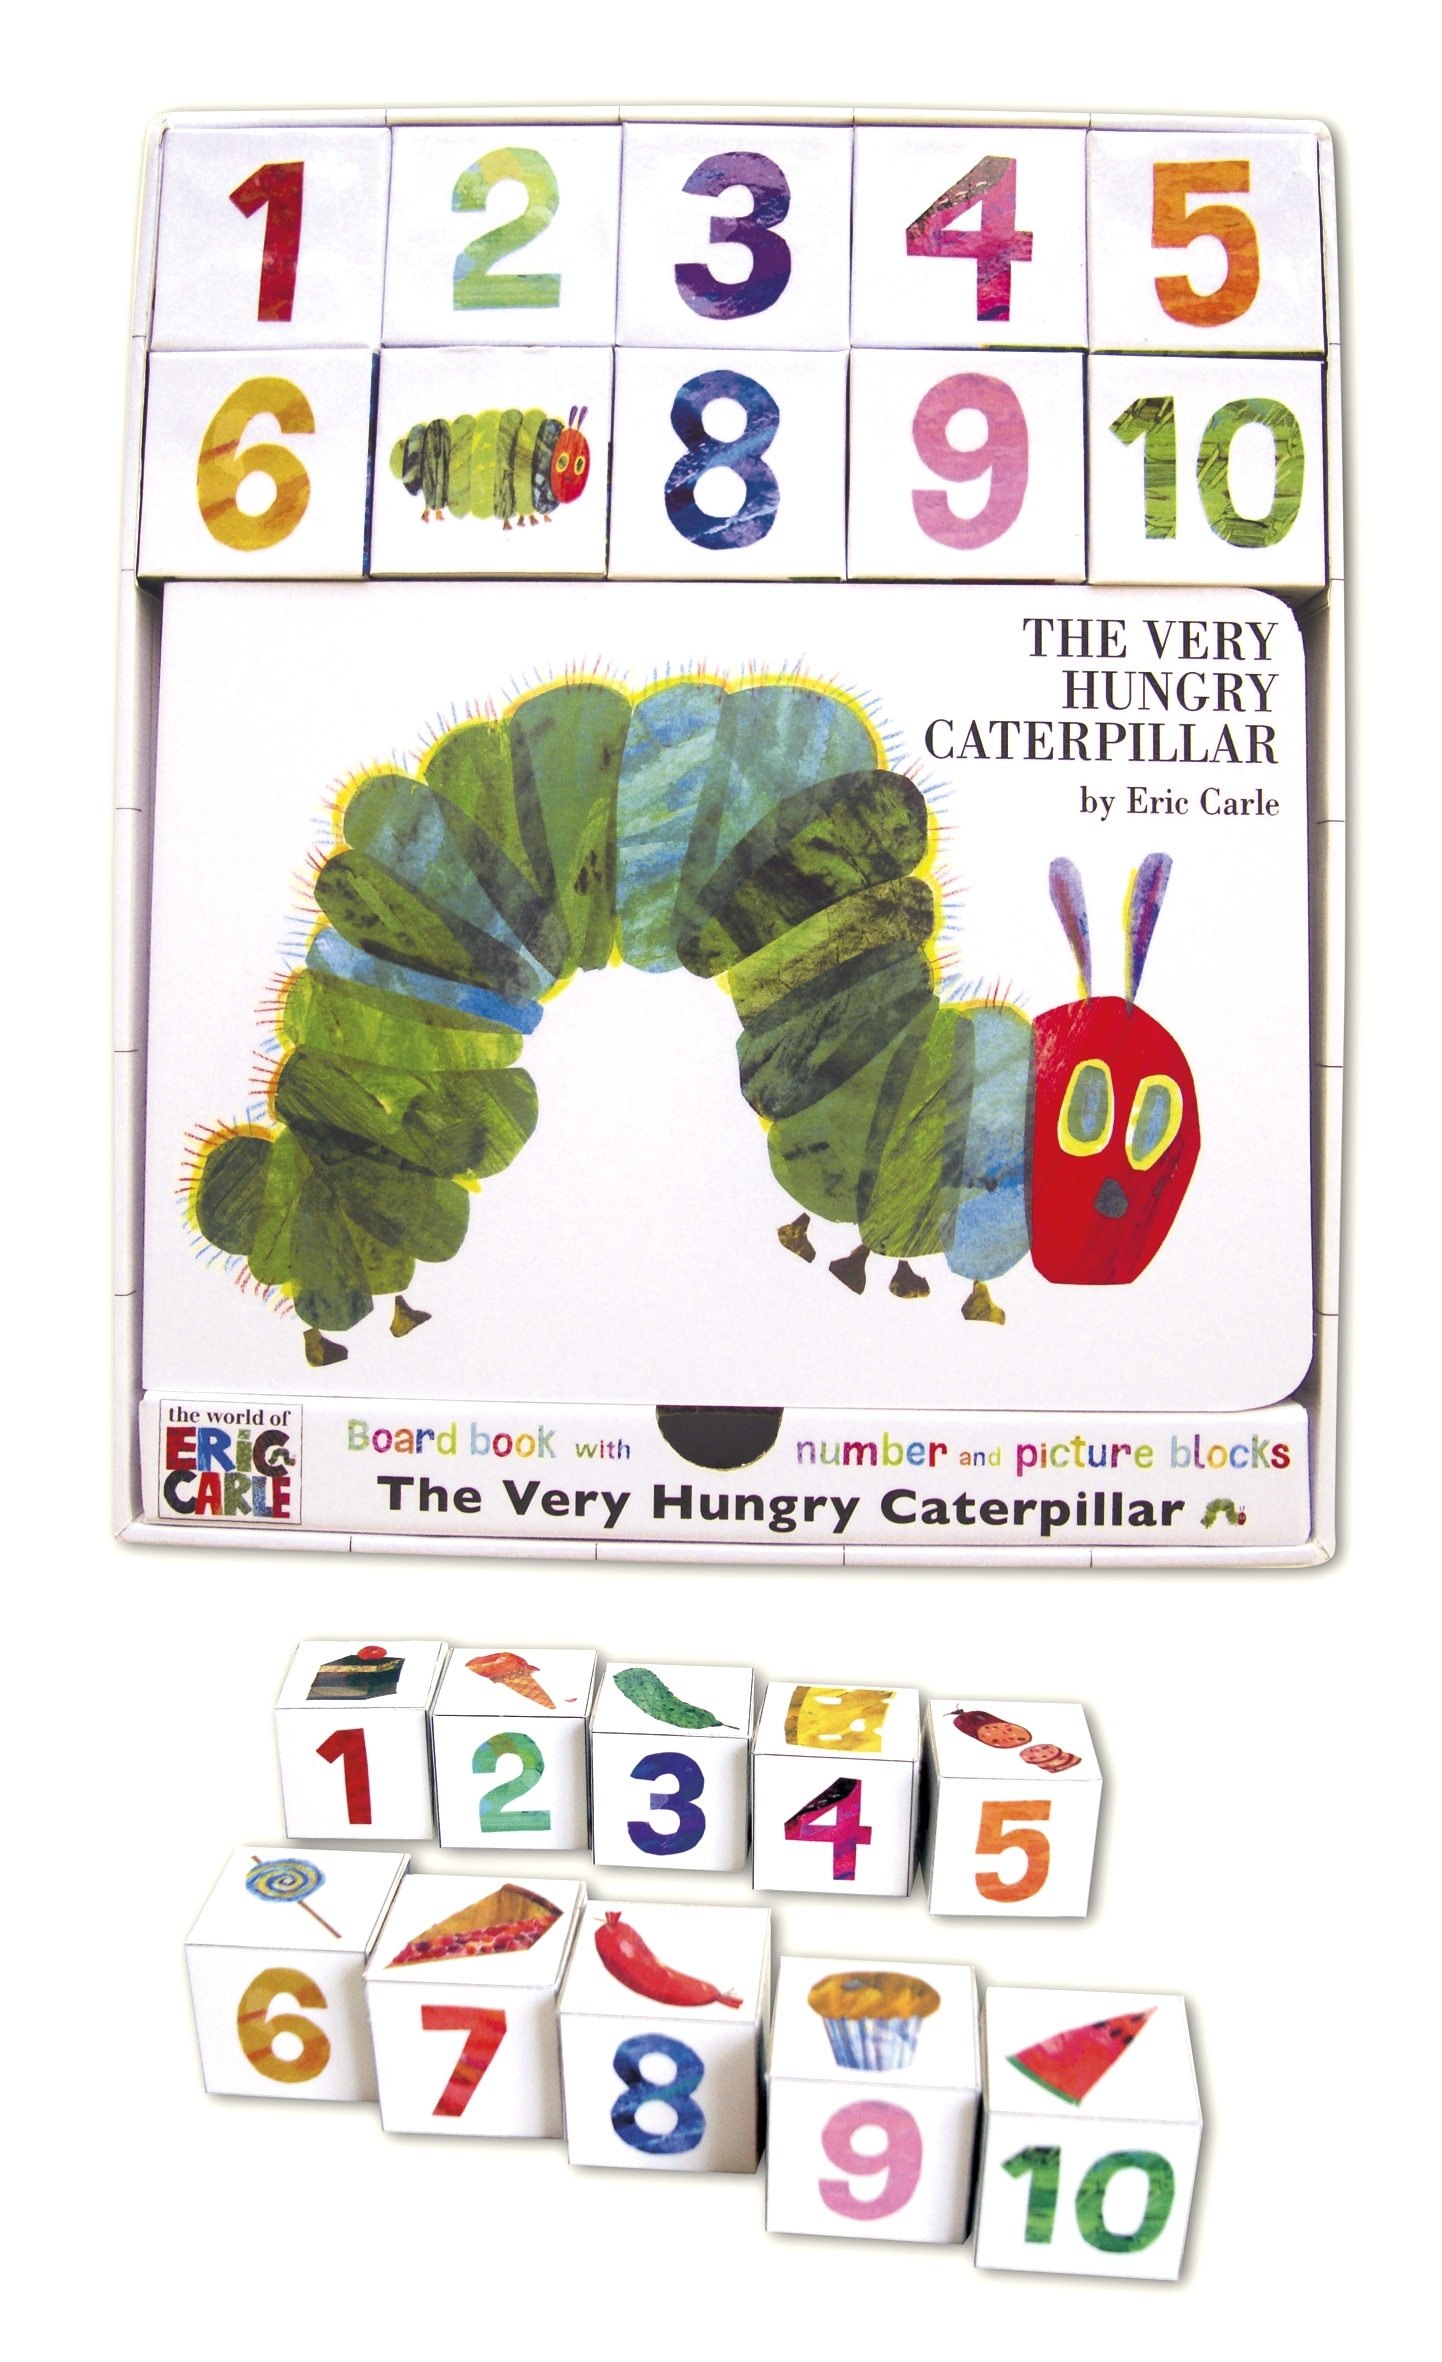 The Very Hungry Caterpillar Board Book And Block Set By Eric Carle